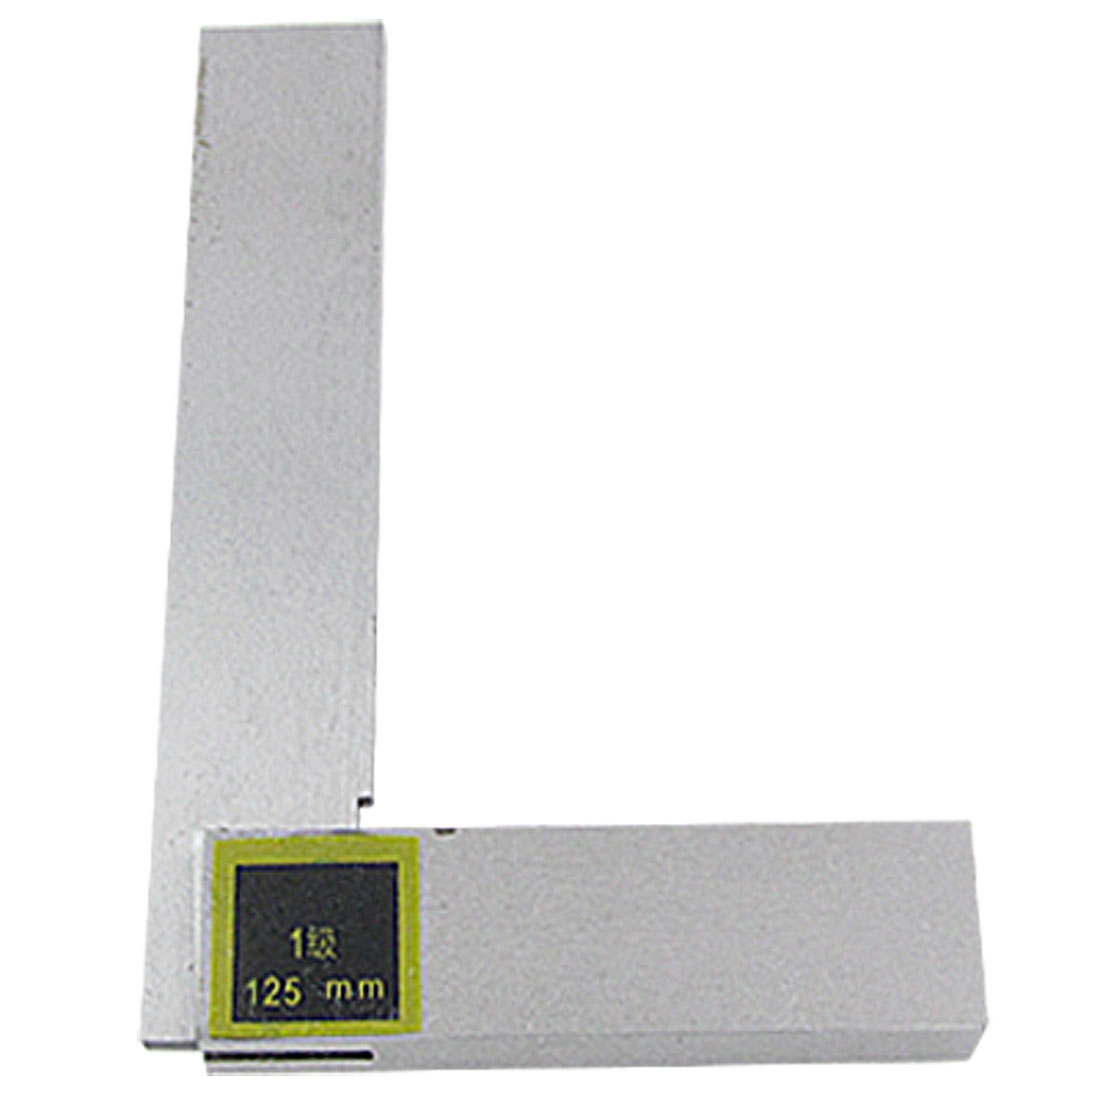 Non-marked Scales L Square Ruler Woodworking Tool 125mm x 80mm